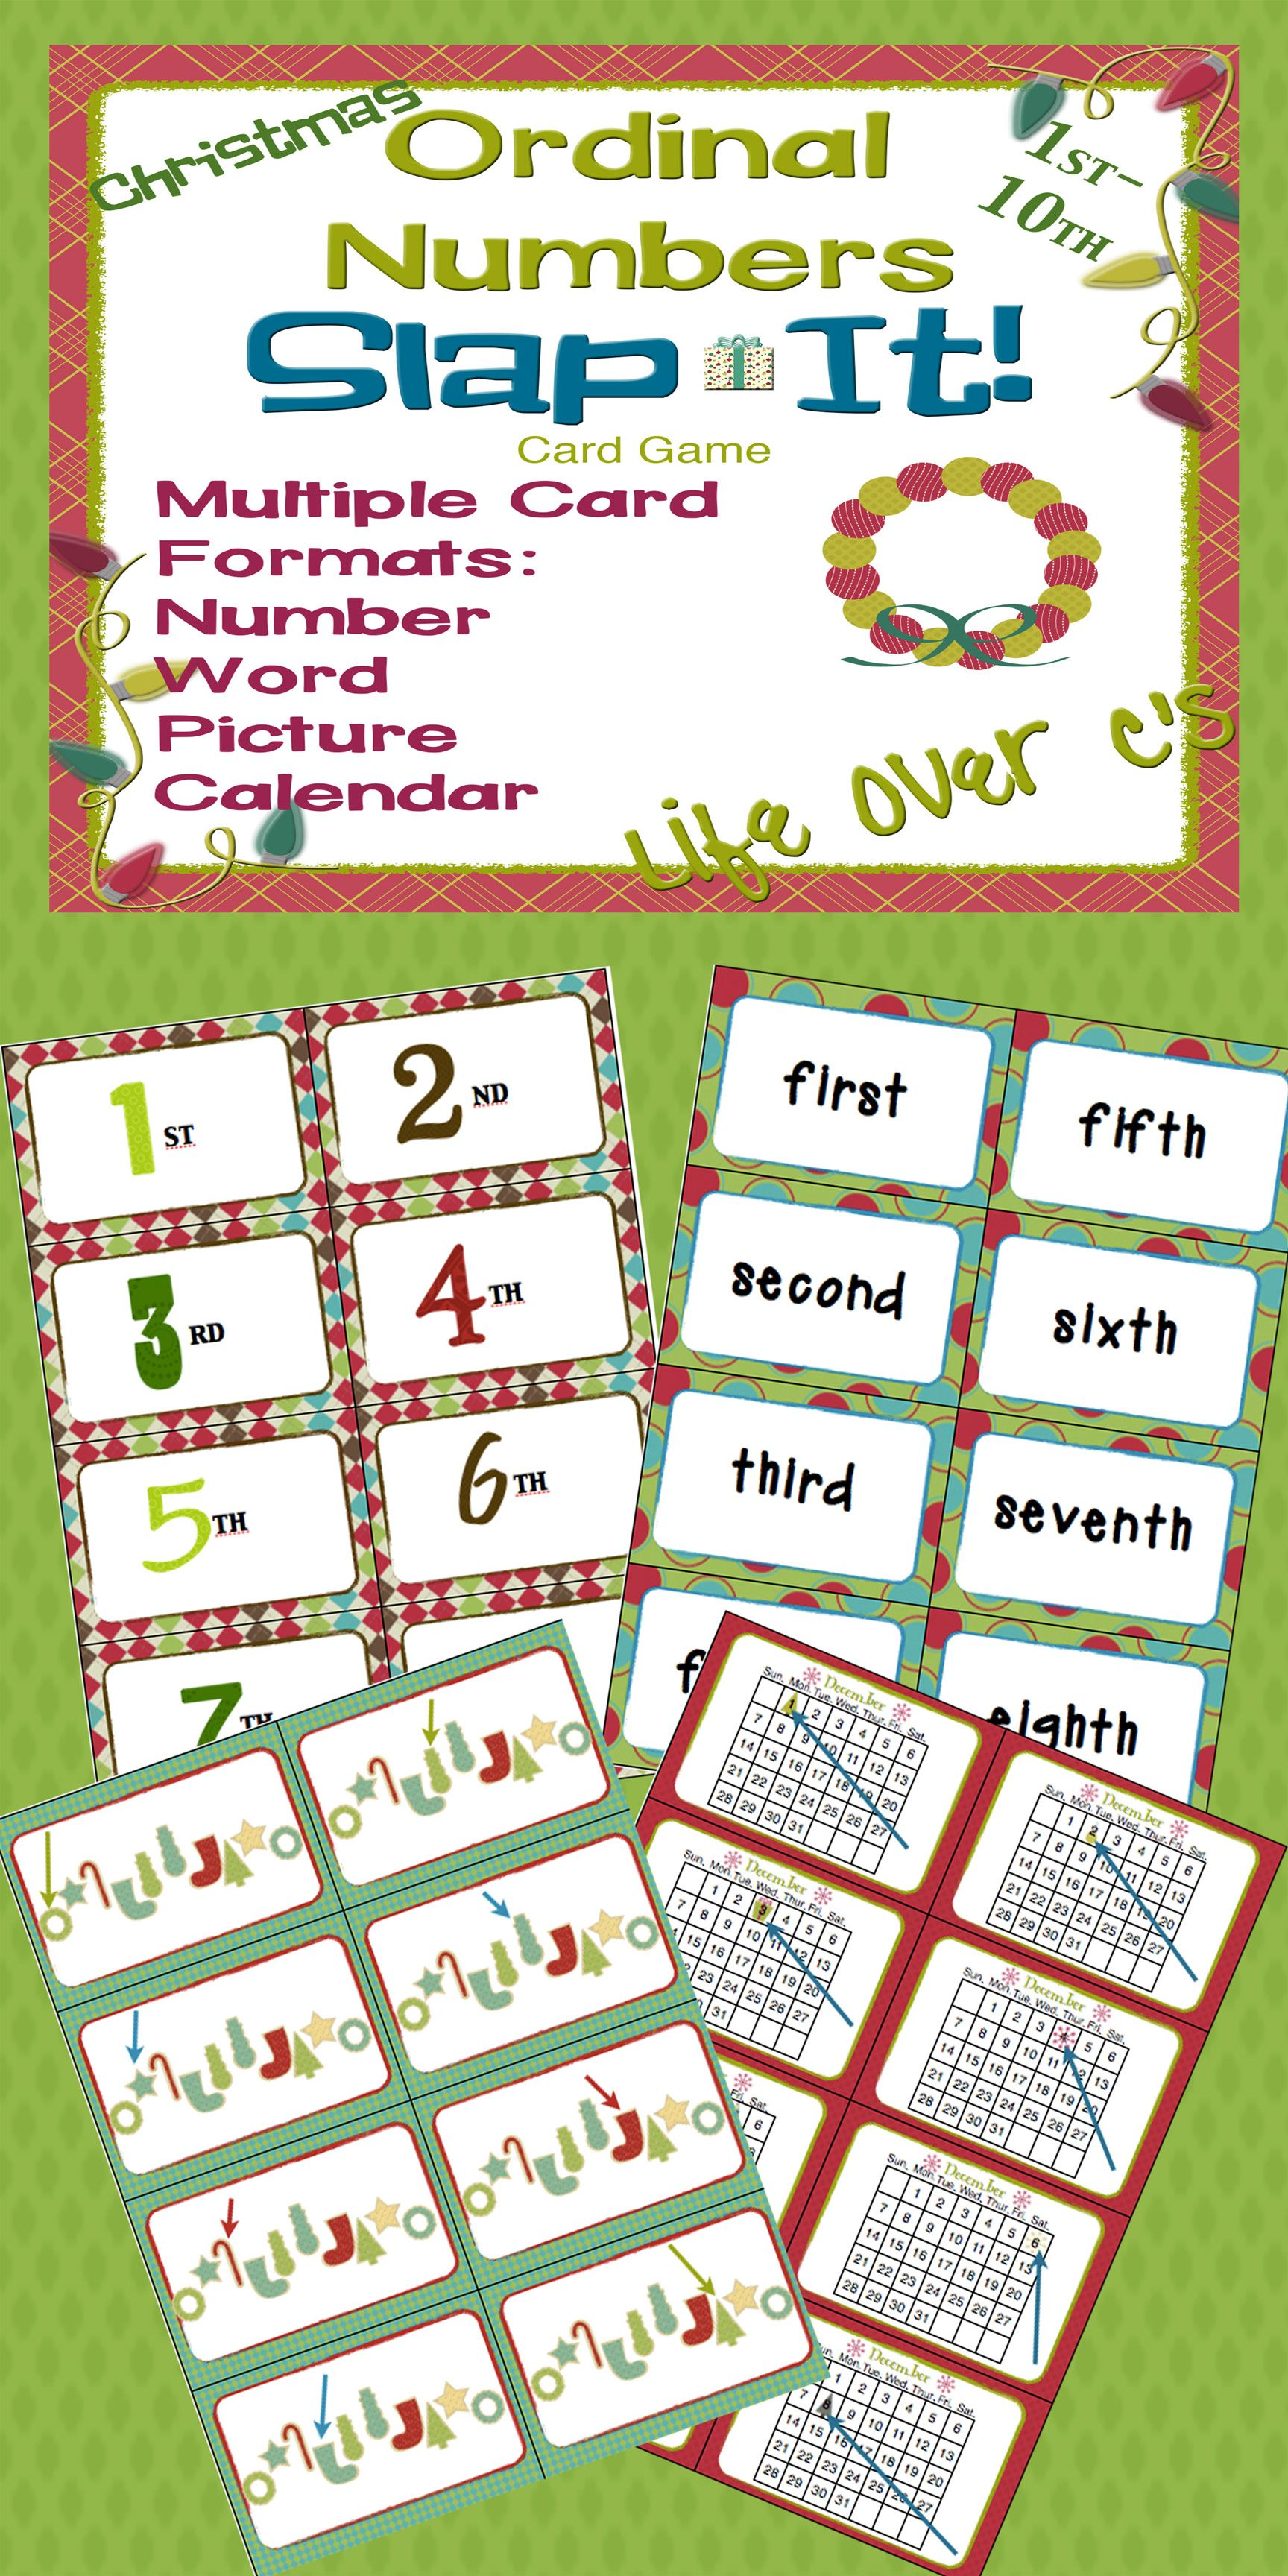 Ordinal Numbers 1st 10th Slap It Card Game Math Center